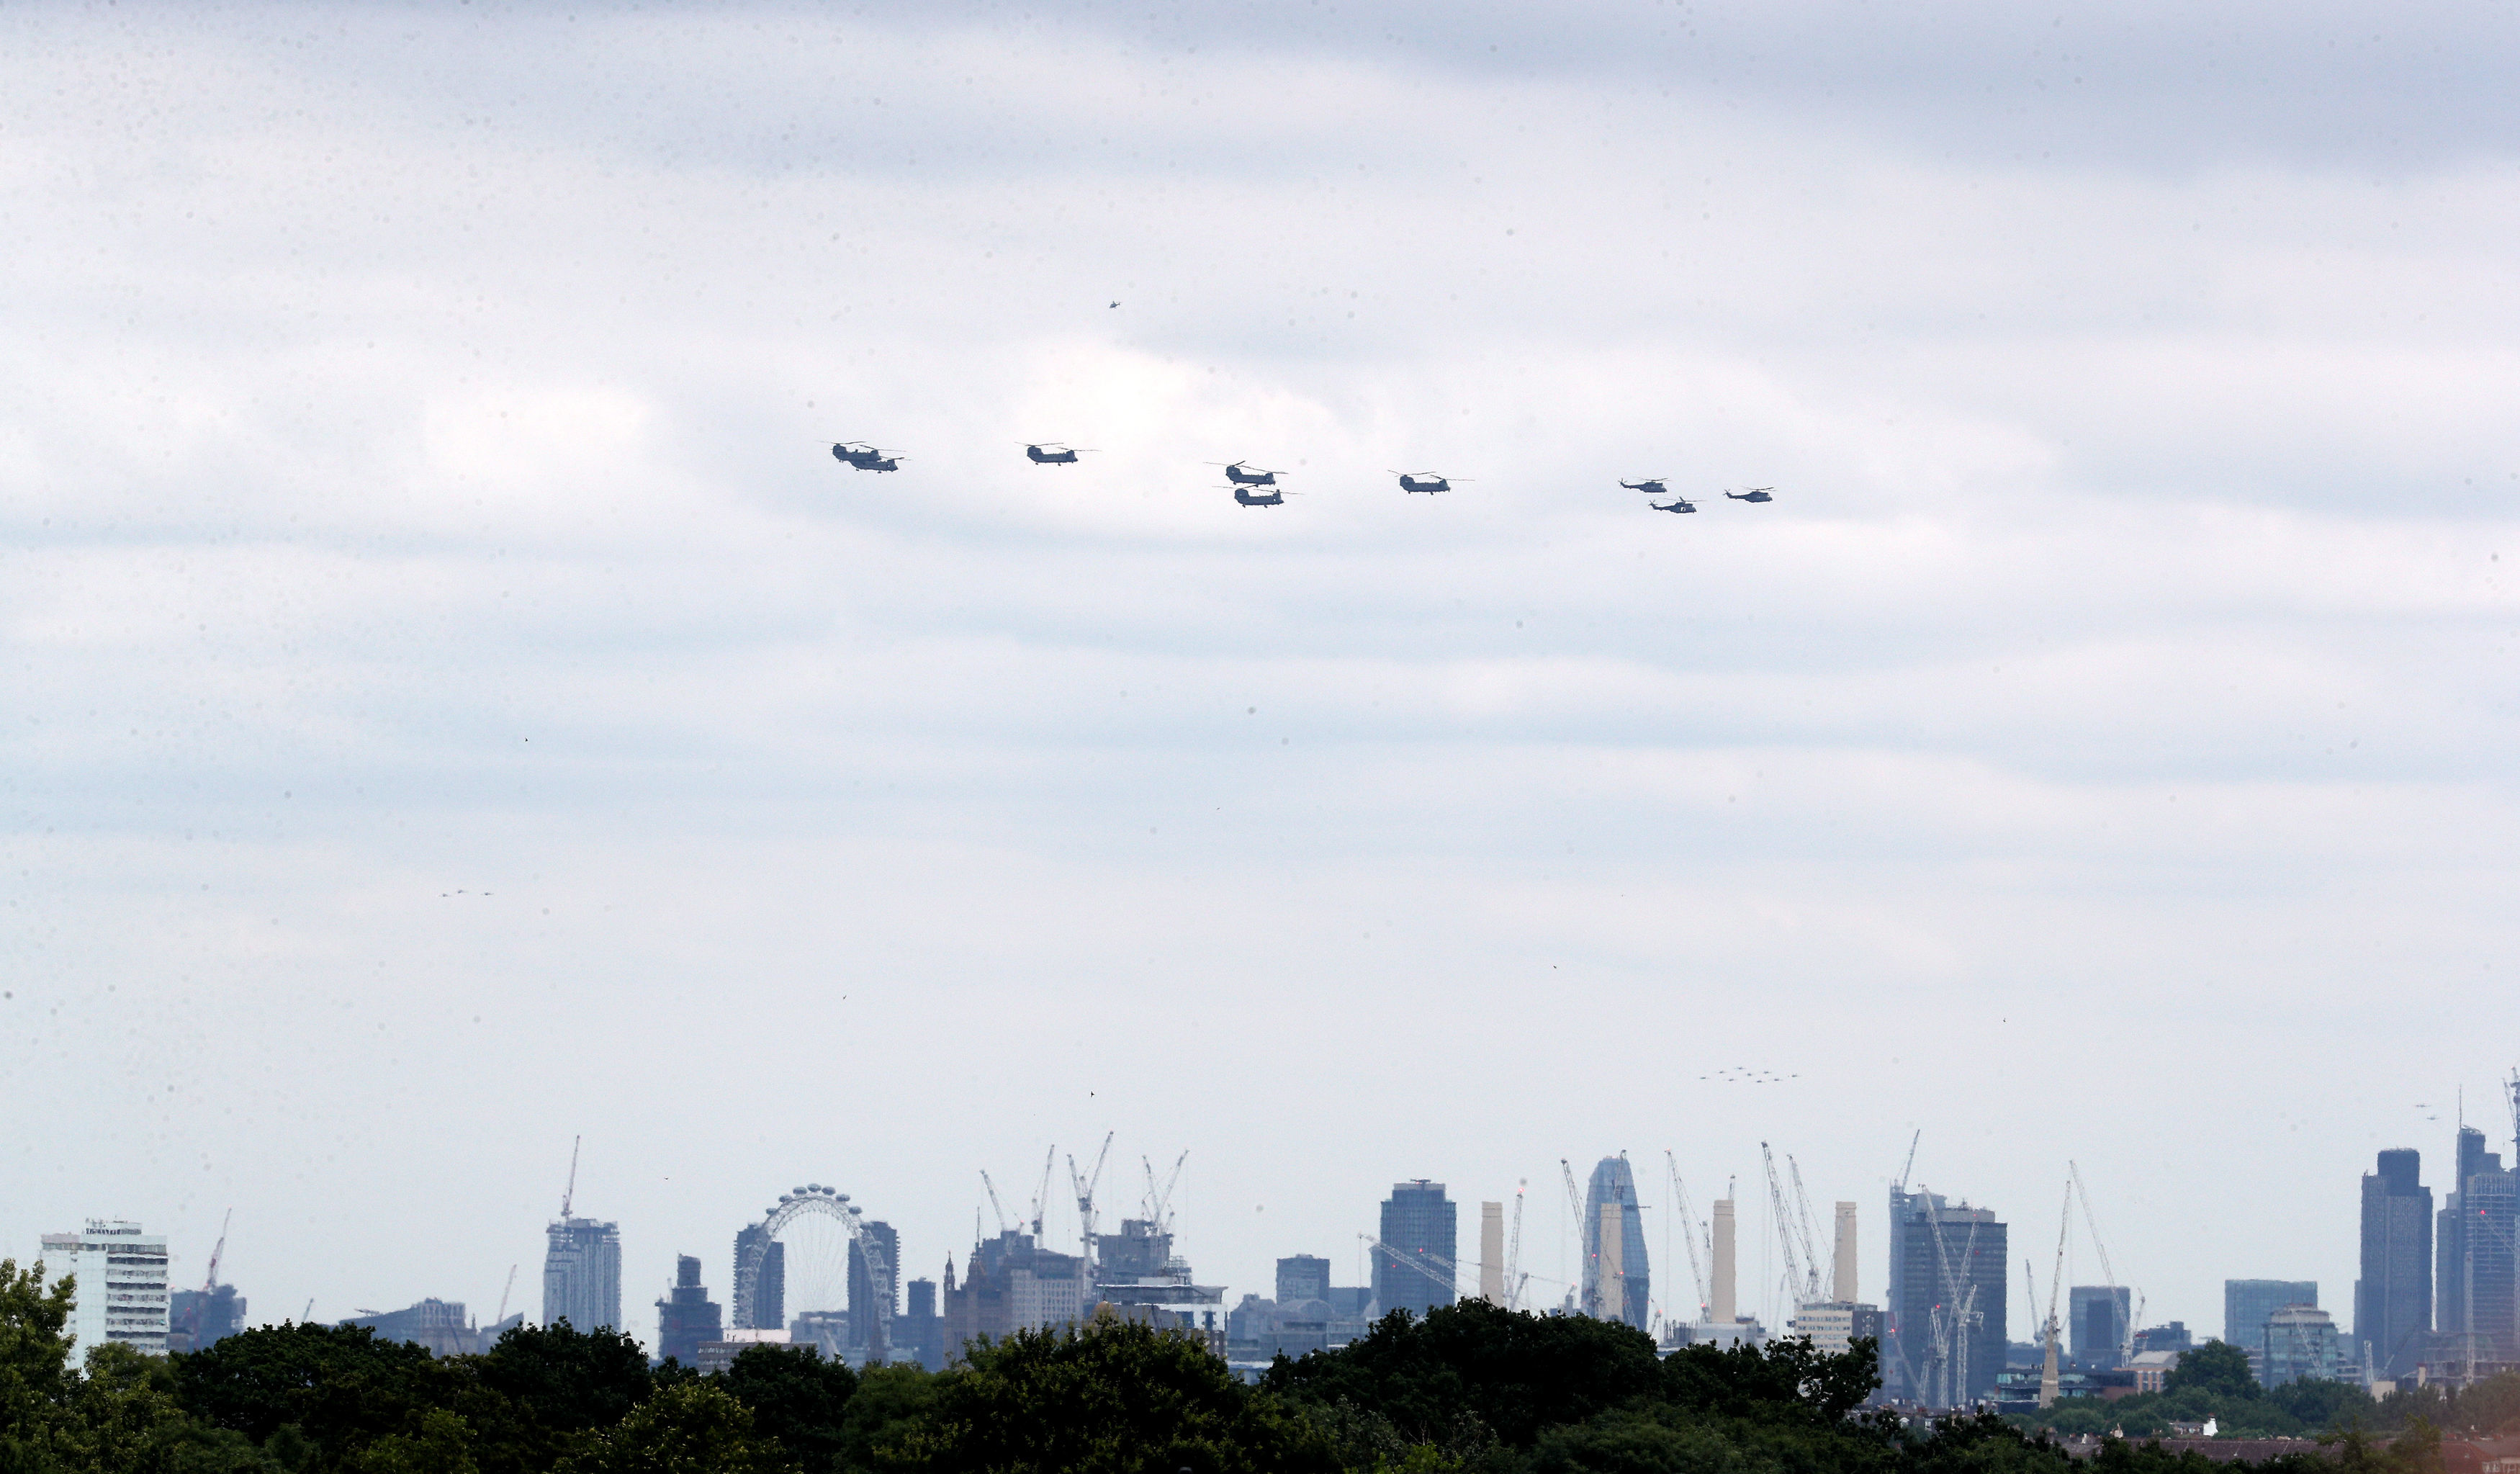 Helicopters over London